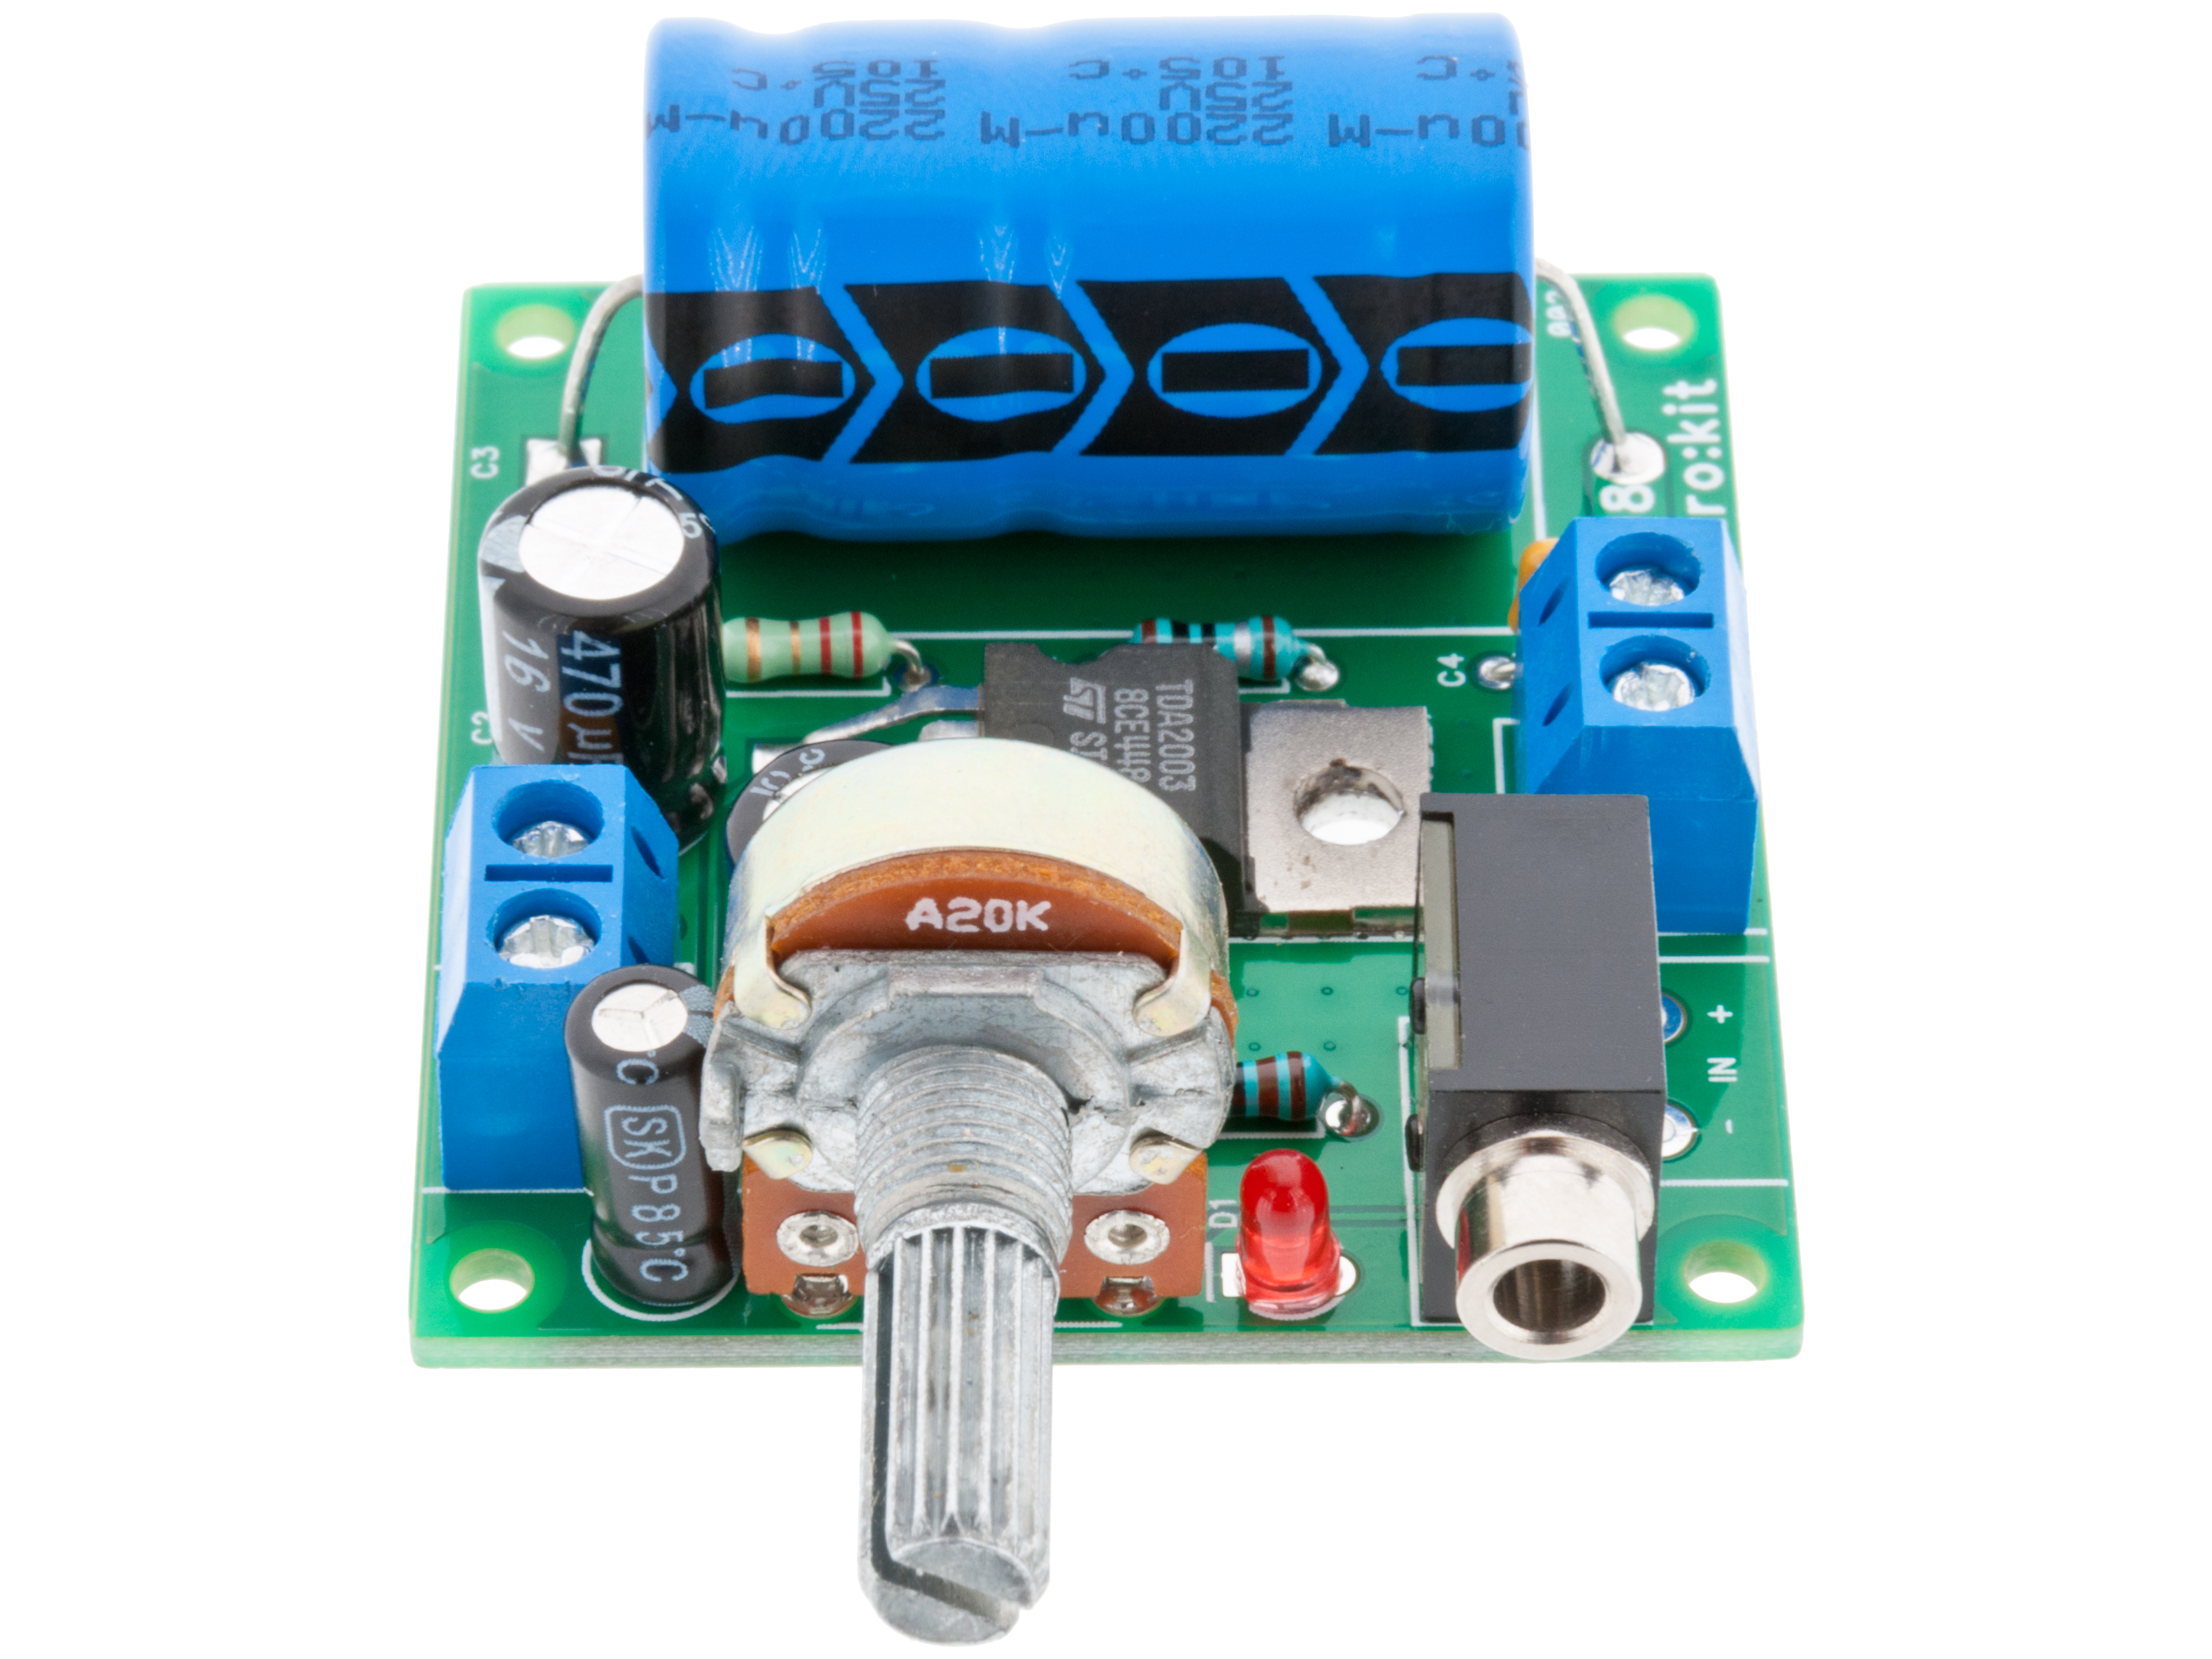 Buy 10w Amplifier Mono Ek008 At The Right Price Electrokit How To Build Your Own 10watt Power Using An Ic Tda 2003 Home Diy Solder Kits Amplifiers